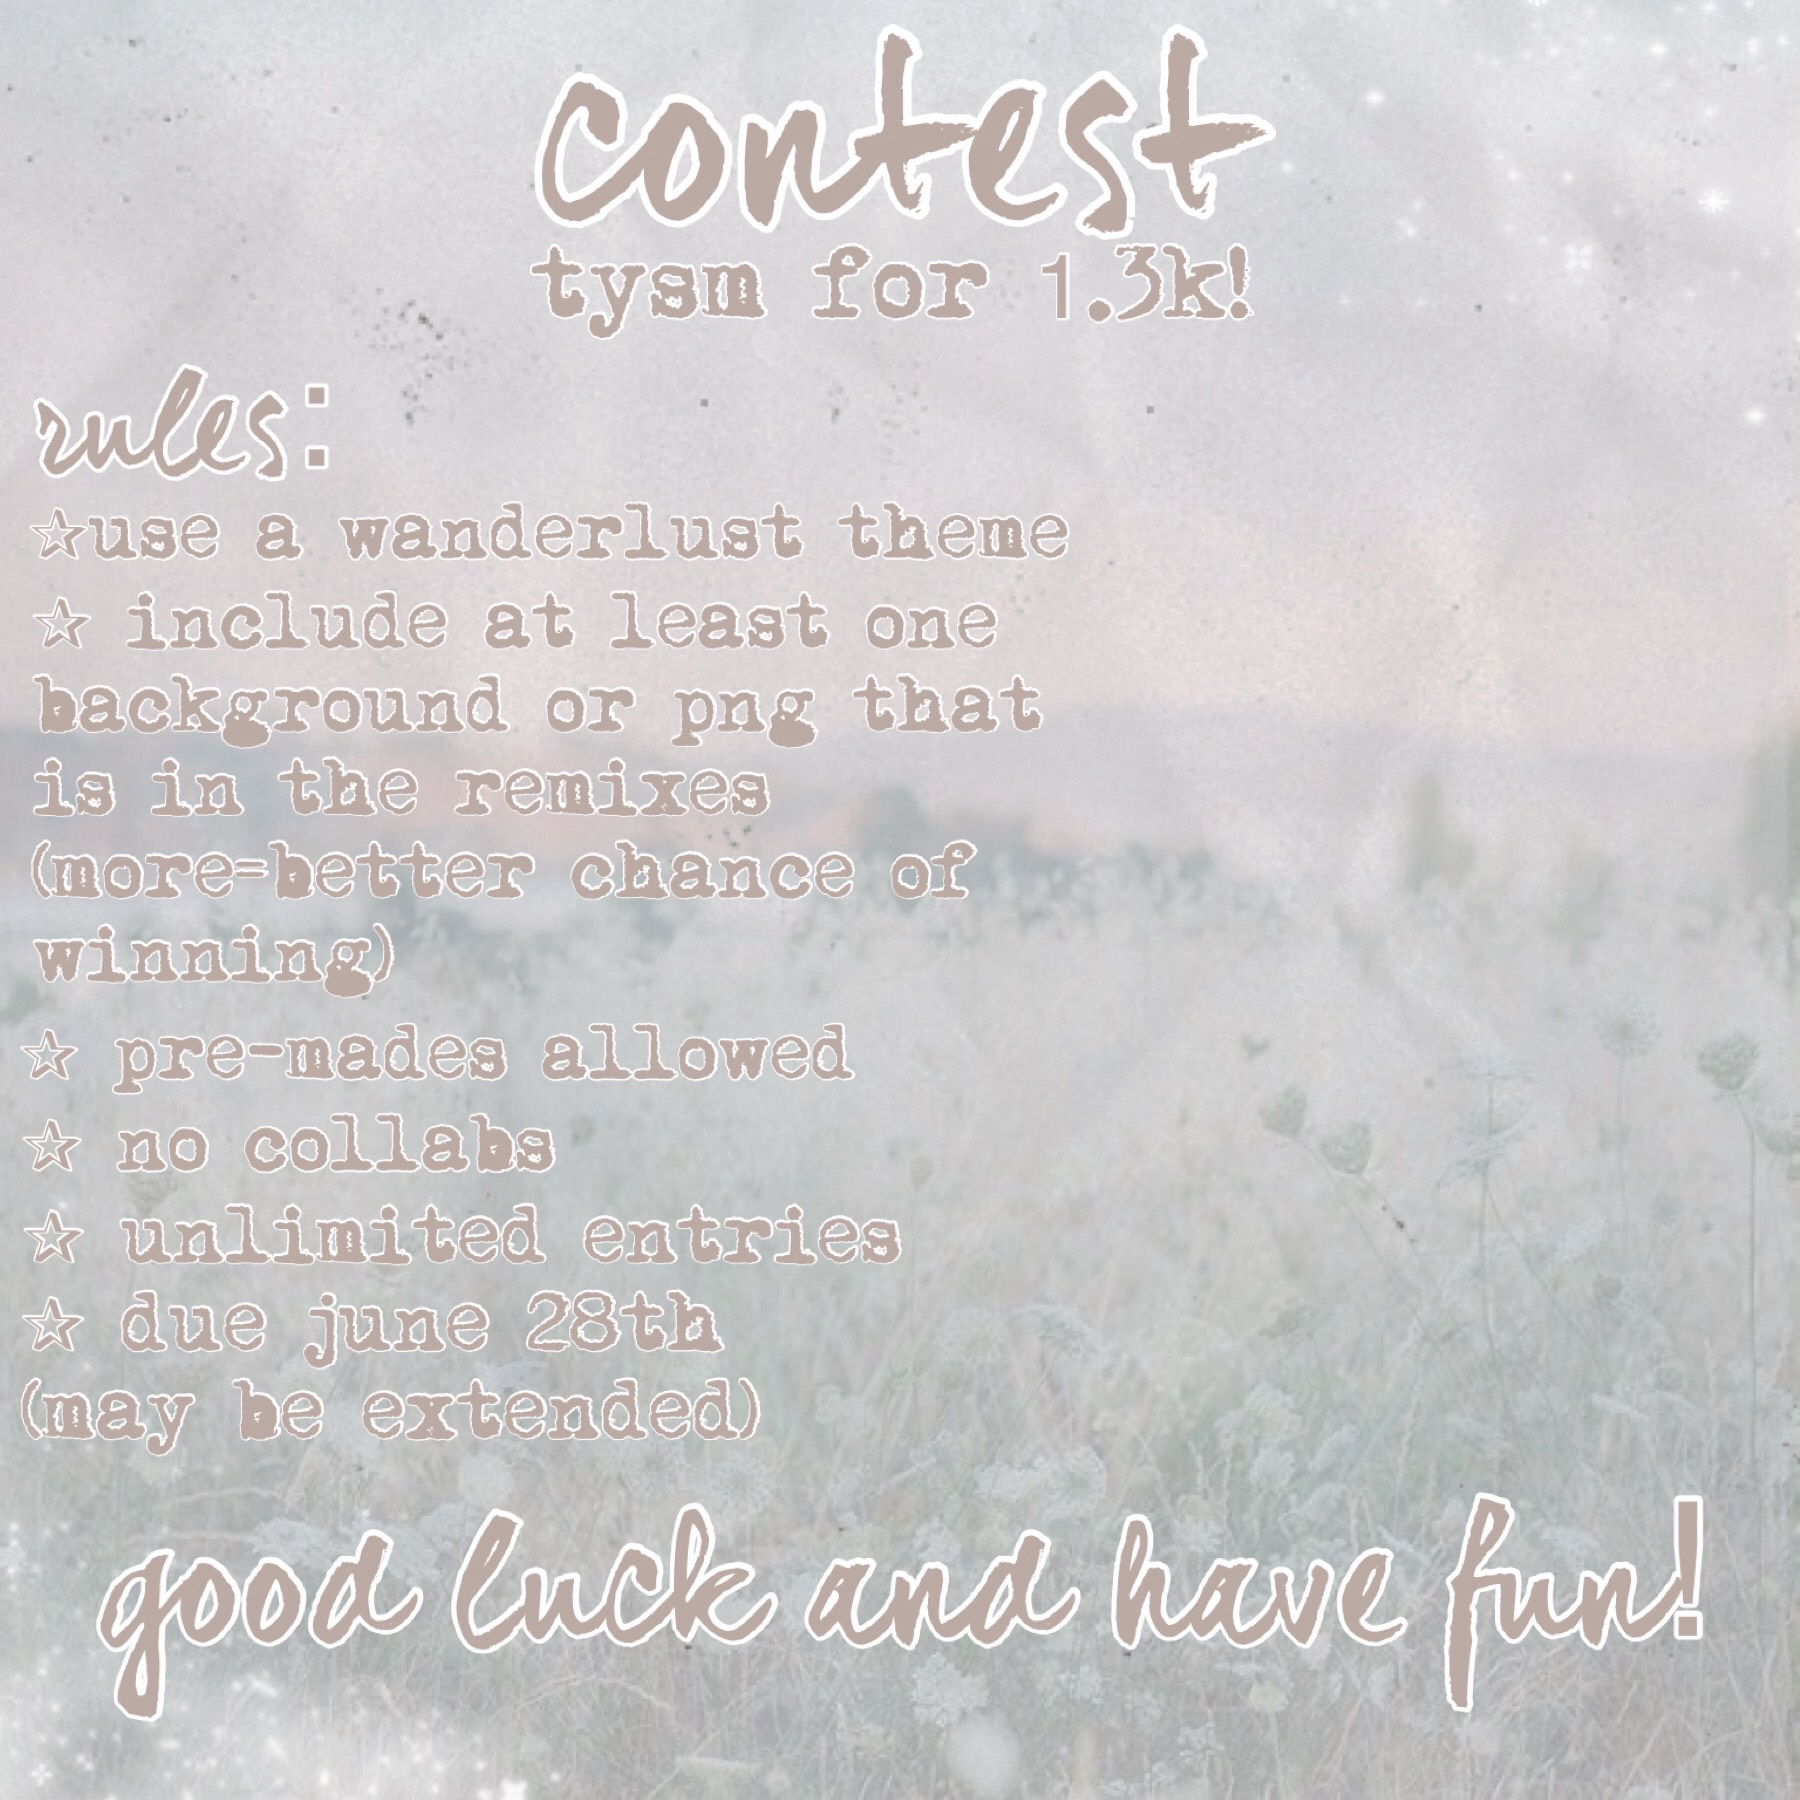 ✰ c o n t e s t ✰ thank again for 1.3k, your support means so much!  the theme of the contest is wanderlust! prizes,backgrounds,and pngs are in remixes!